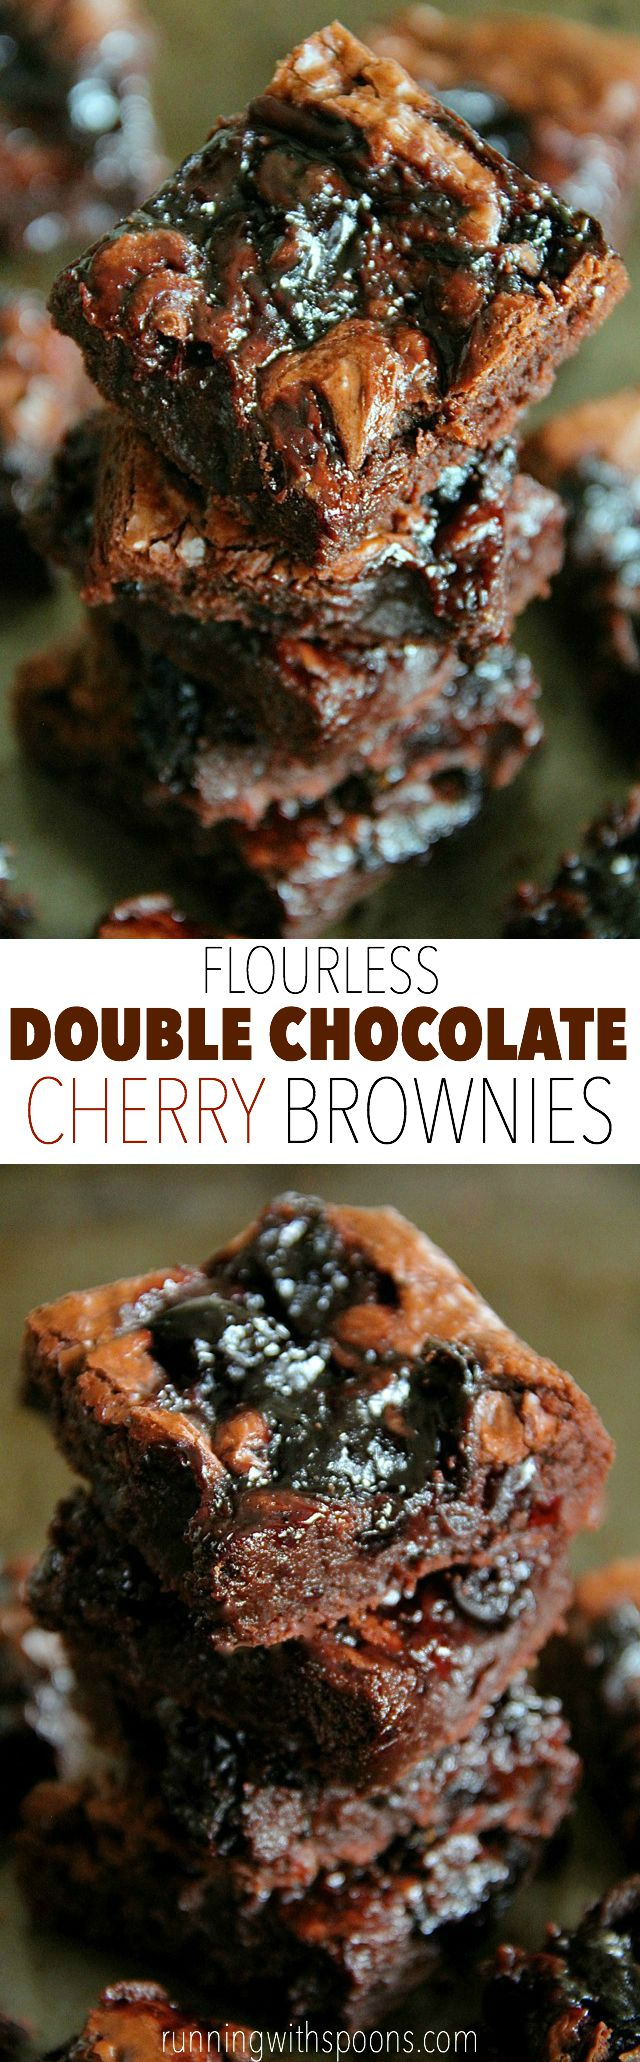 Flourless Double Chocolate Cherry Brownies -- rich and fudgy brownies that are grain-free and made without beans! || runningwithspoons.com #glutenfree #chocolate #brownies